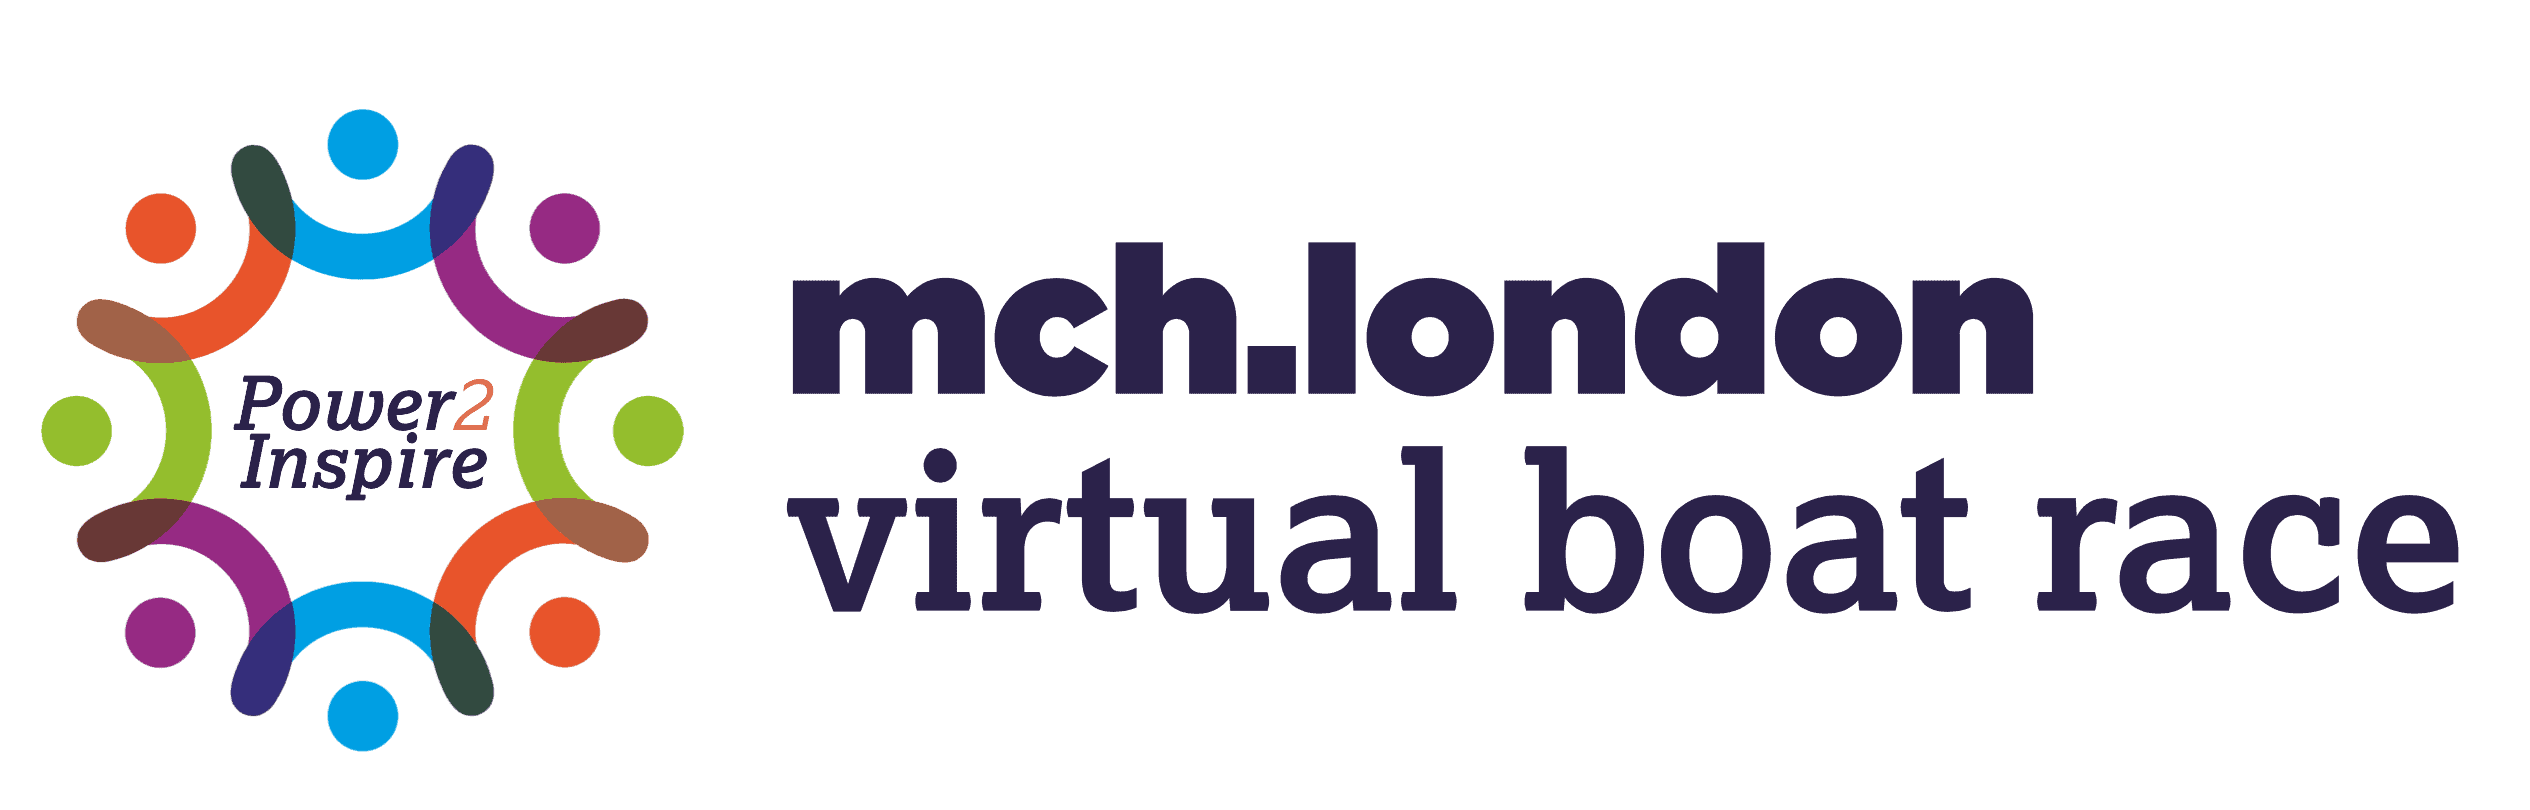 Launching the first ever mch.london virtual boat race fundraiser in aid of Power2Inspire